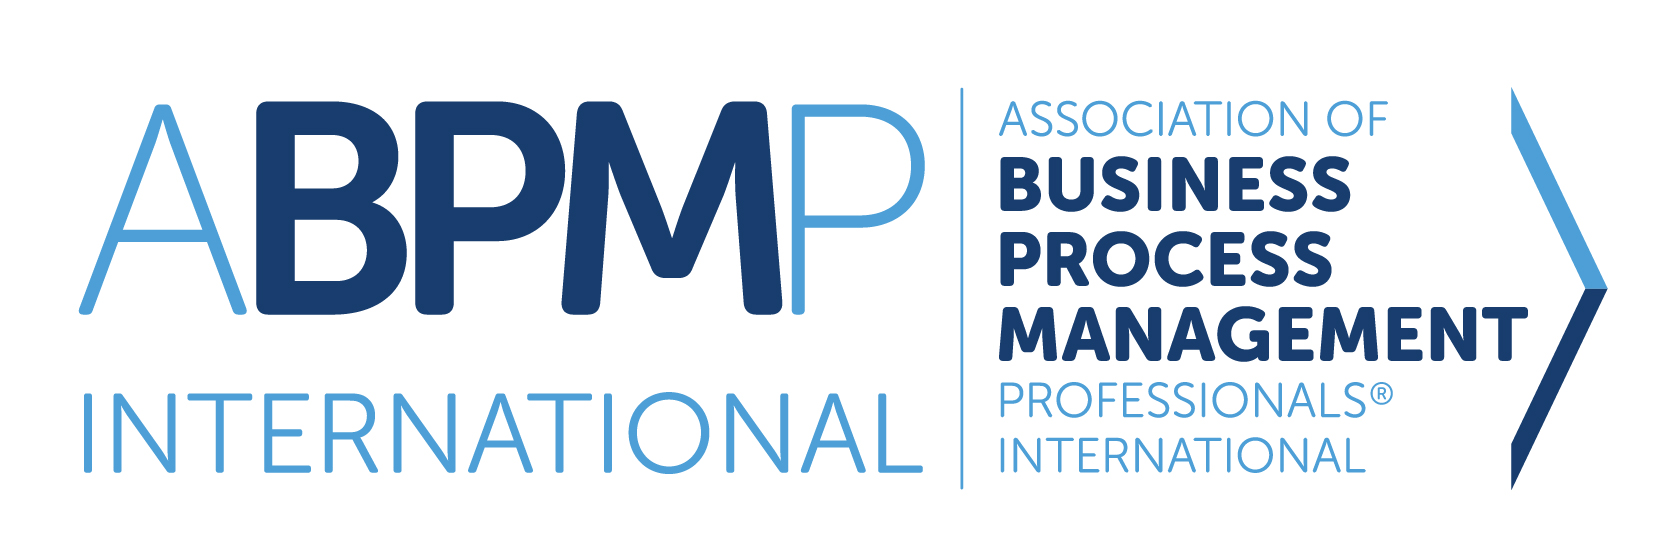 Association of Business Process Management Professionals